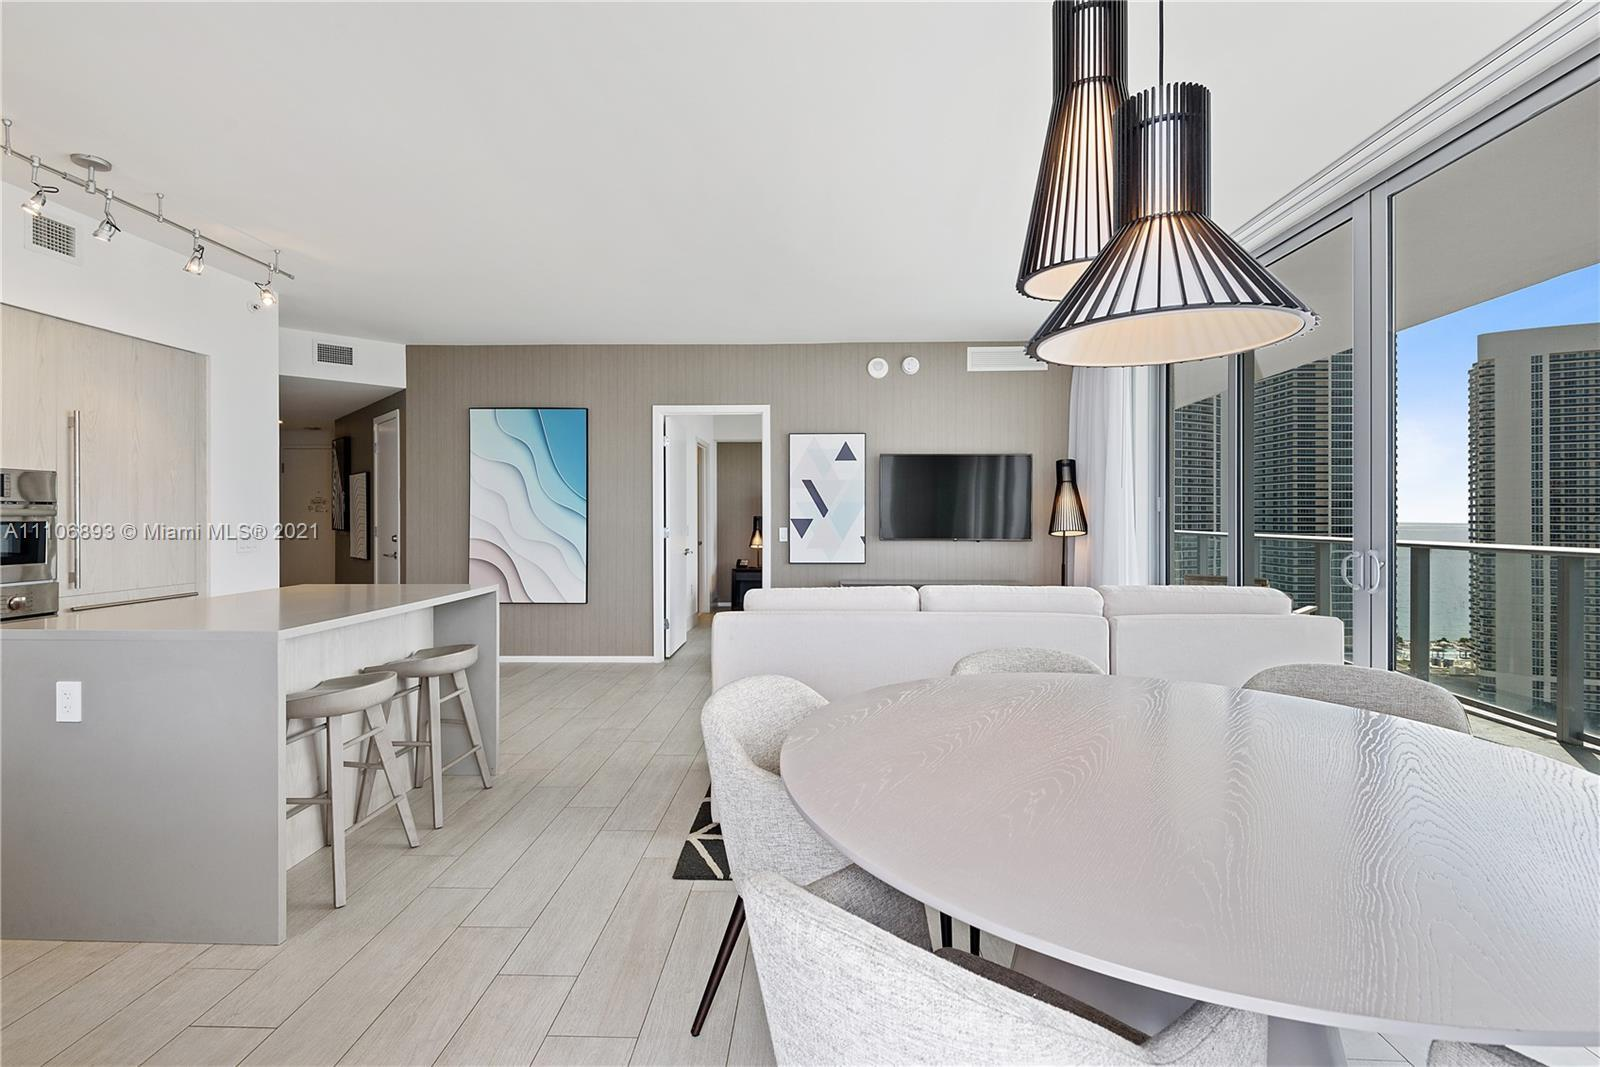 Perfect 3-bed, 2.5-bath corner condo at new luxury high-rise. Unit is fully furnished with double ex